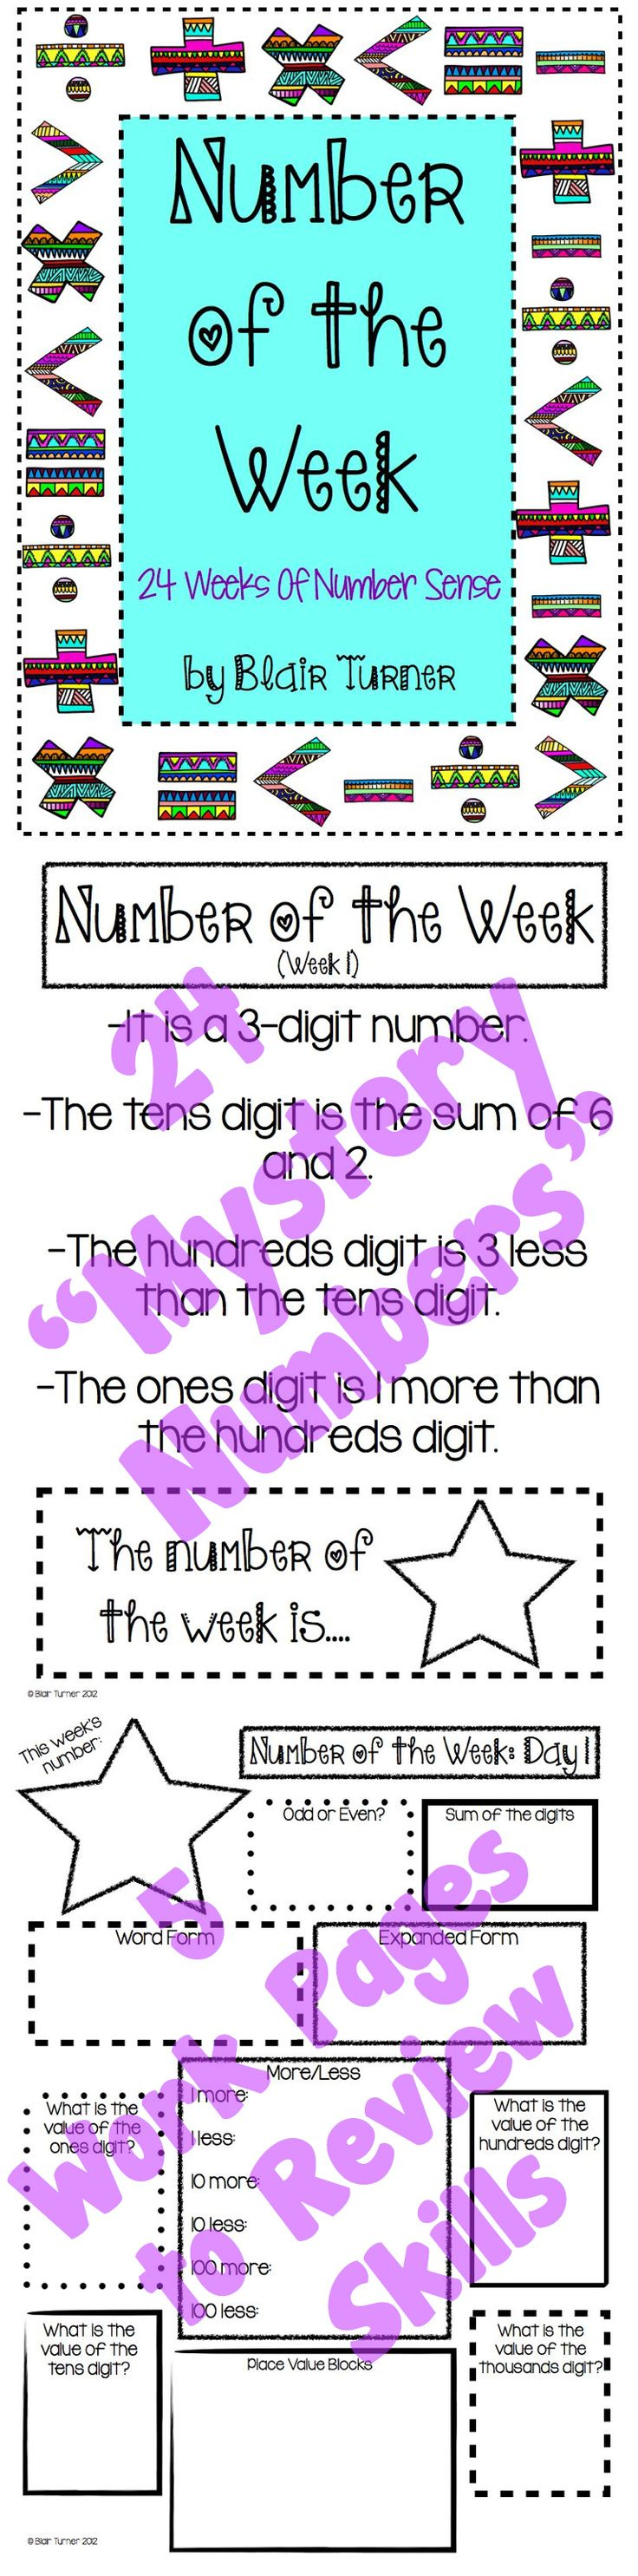 Worksheet Math Problem Of The Day 4th Grade 1000 images about math 4th gr problem of the day morning work on this product is designed for grades 3 and up to develop number sense sharpen solving skills common core really e